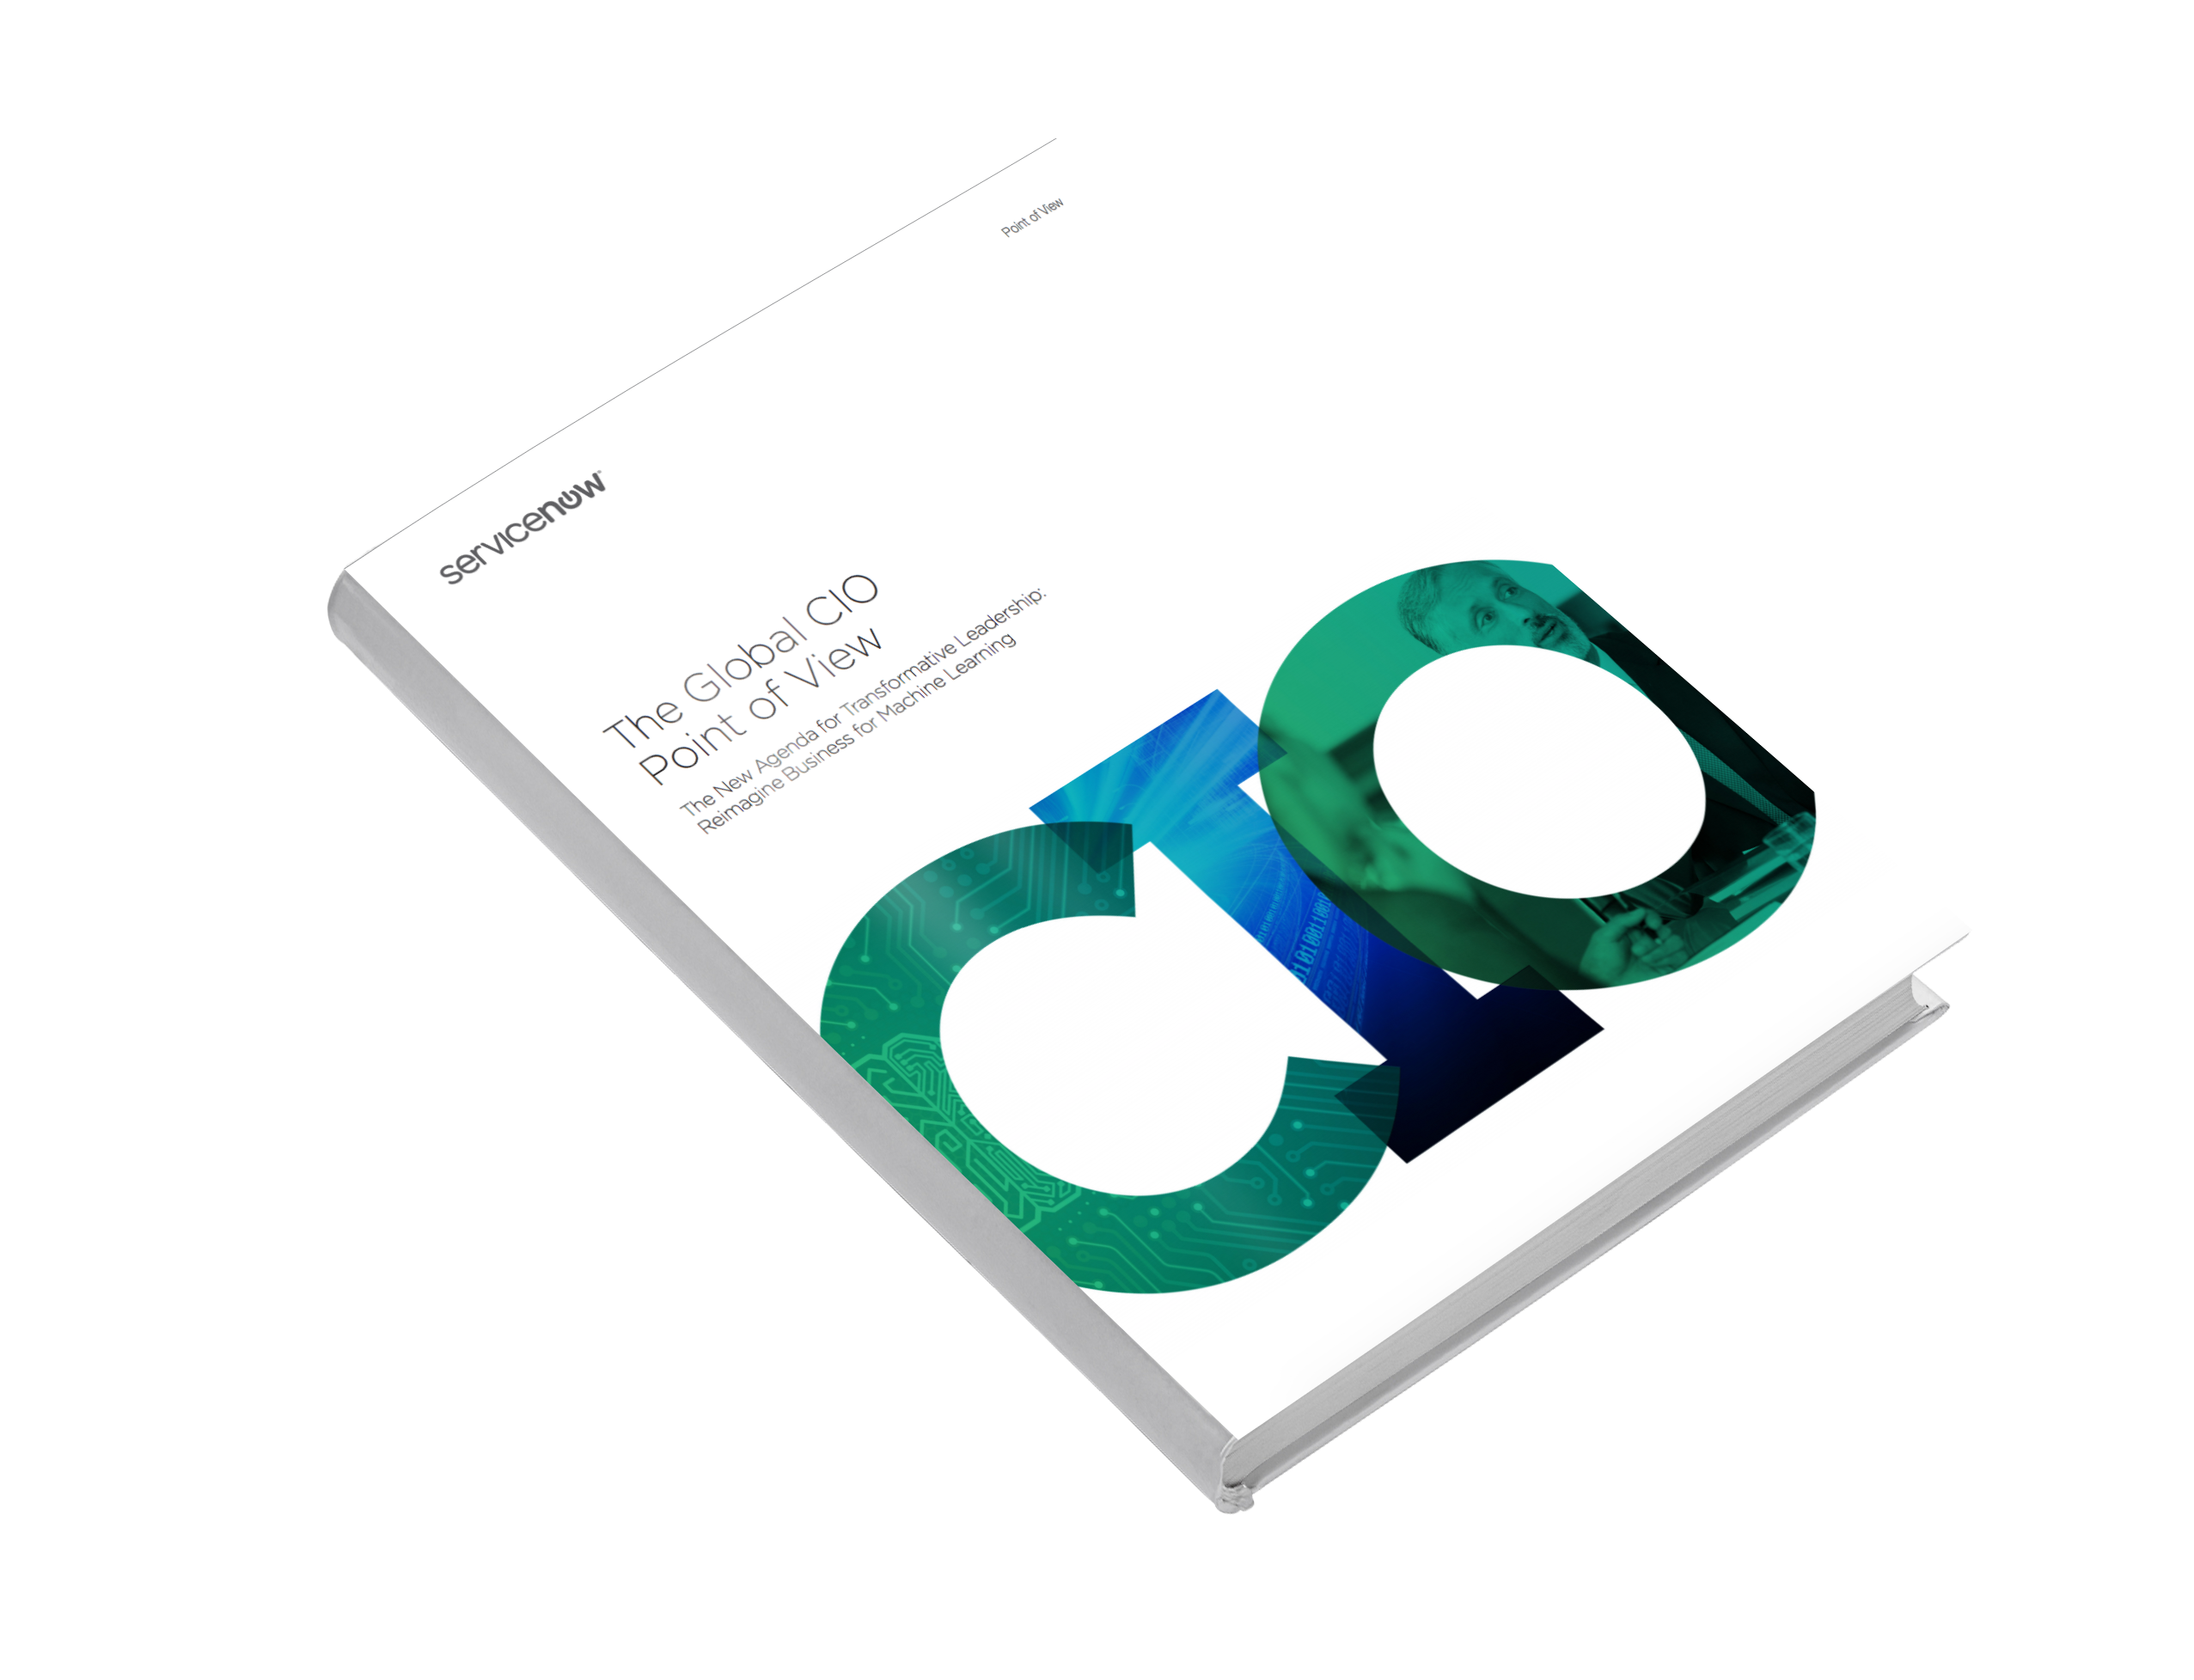 Whitepaper Book 2-1.png